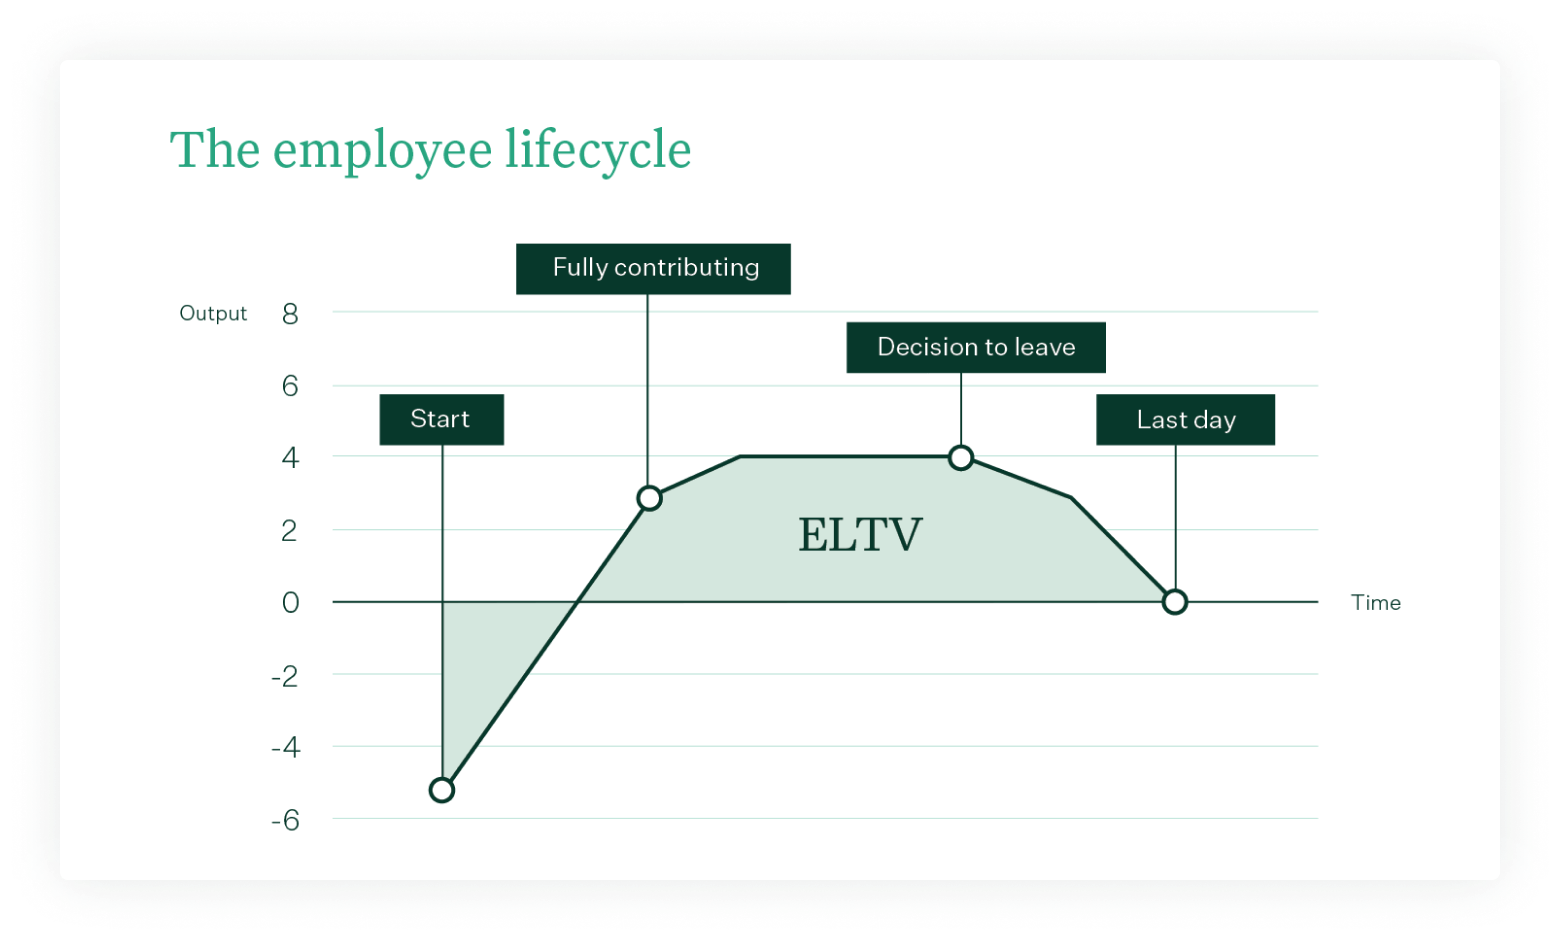 ELTV – The employee lifecycle